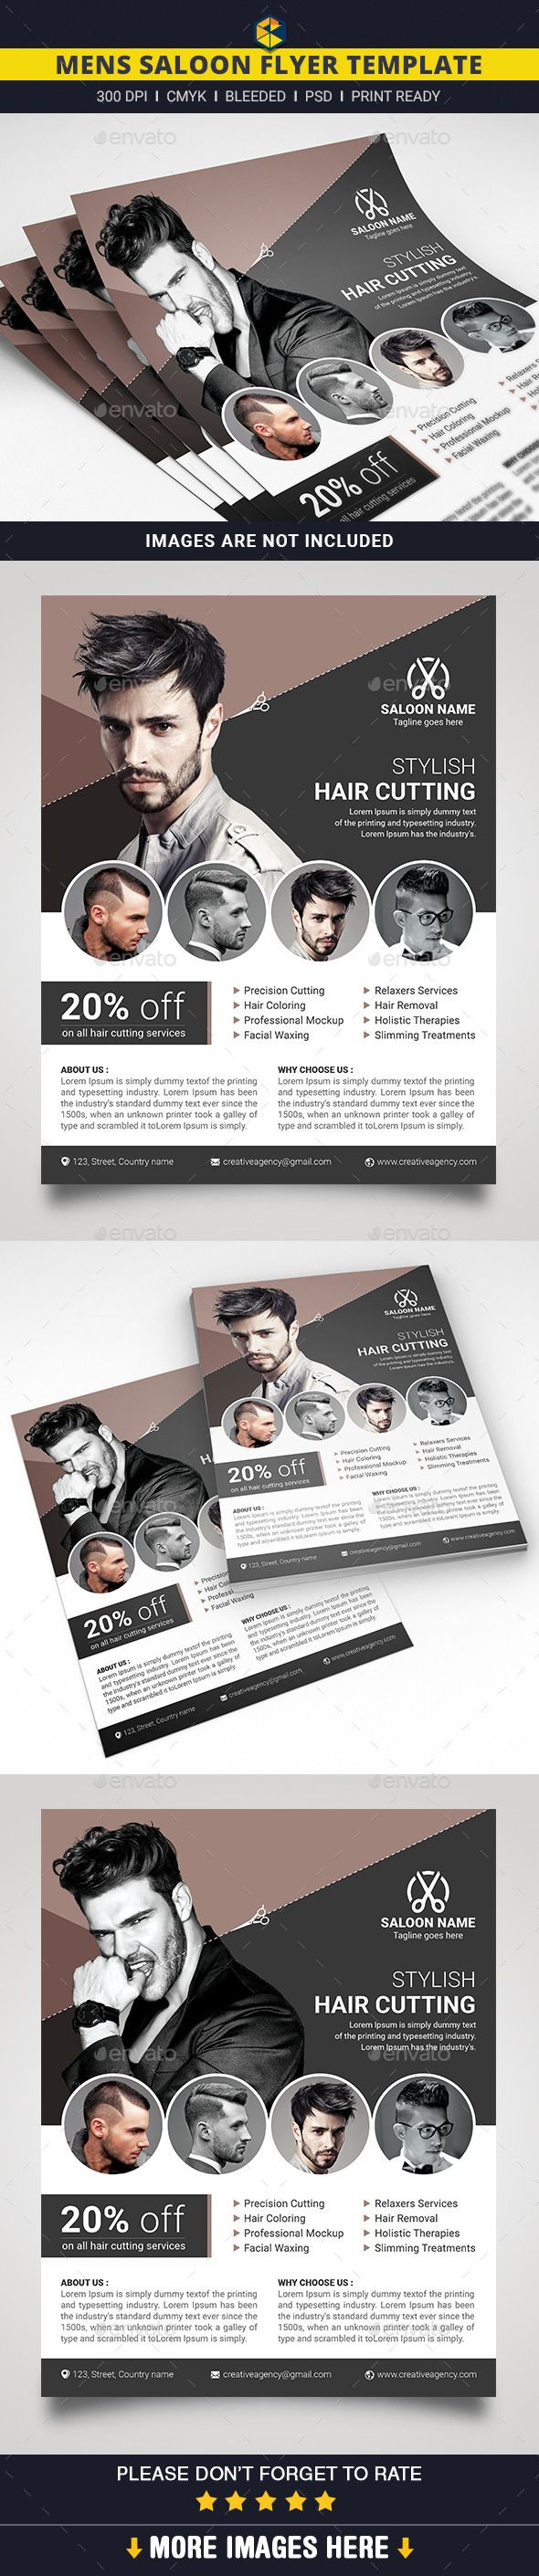 1000+ ideas about Hair Saloon For Men on Pinterest Messages, Funny ...